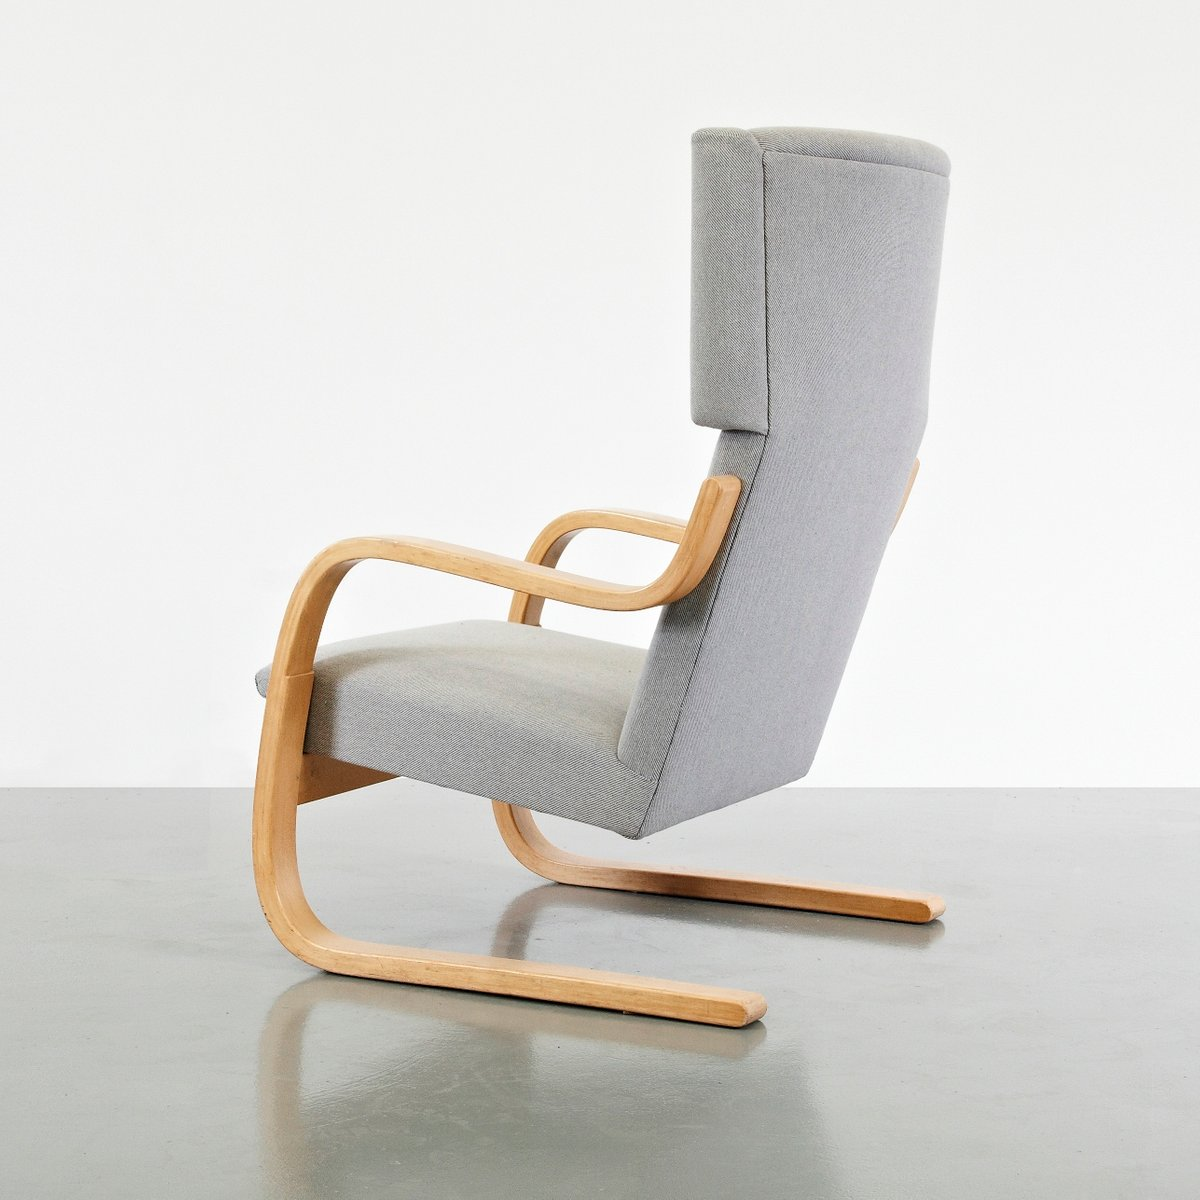 alvar aalto furniture. Wingback Lounge Chair By Alvar Aalto, 1950s Aalto Furniture N